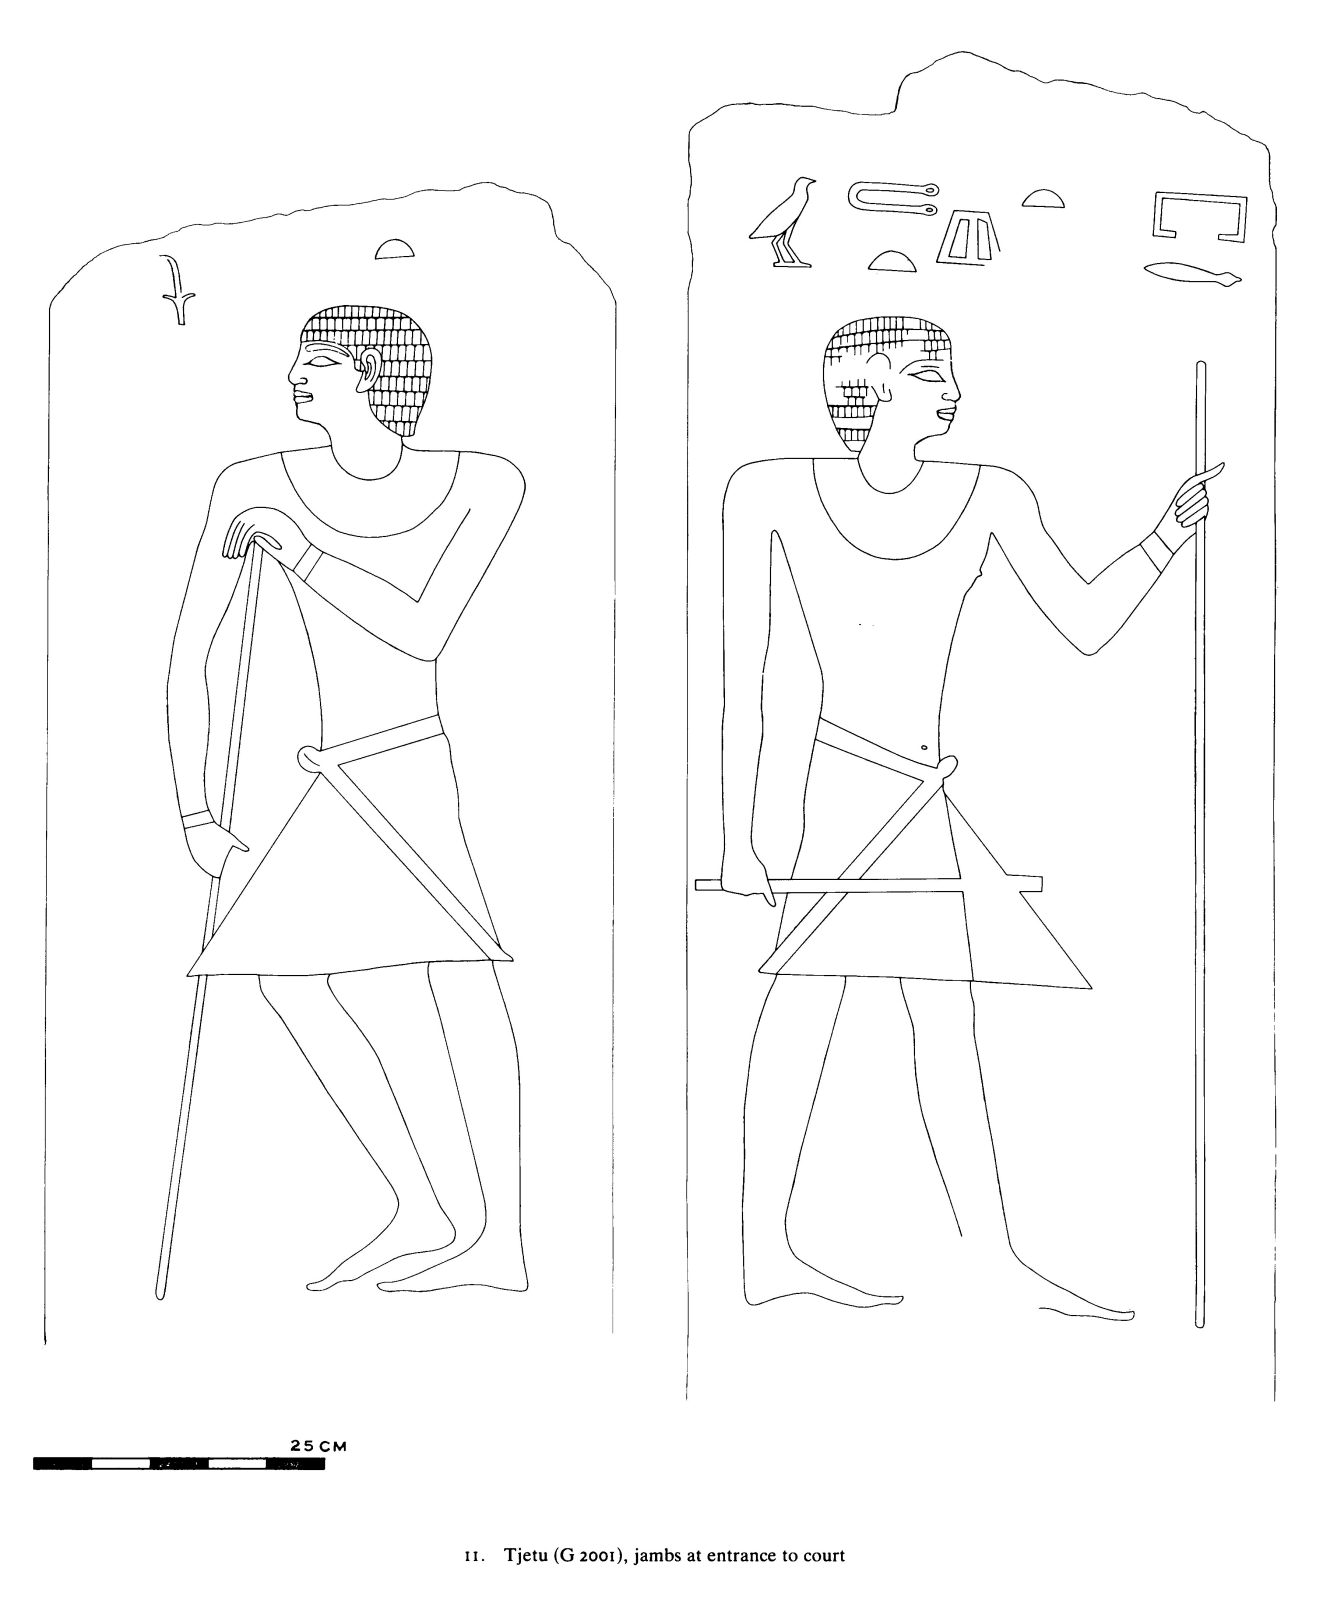 Drawings: G 2001: relief from entrance jambs